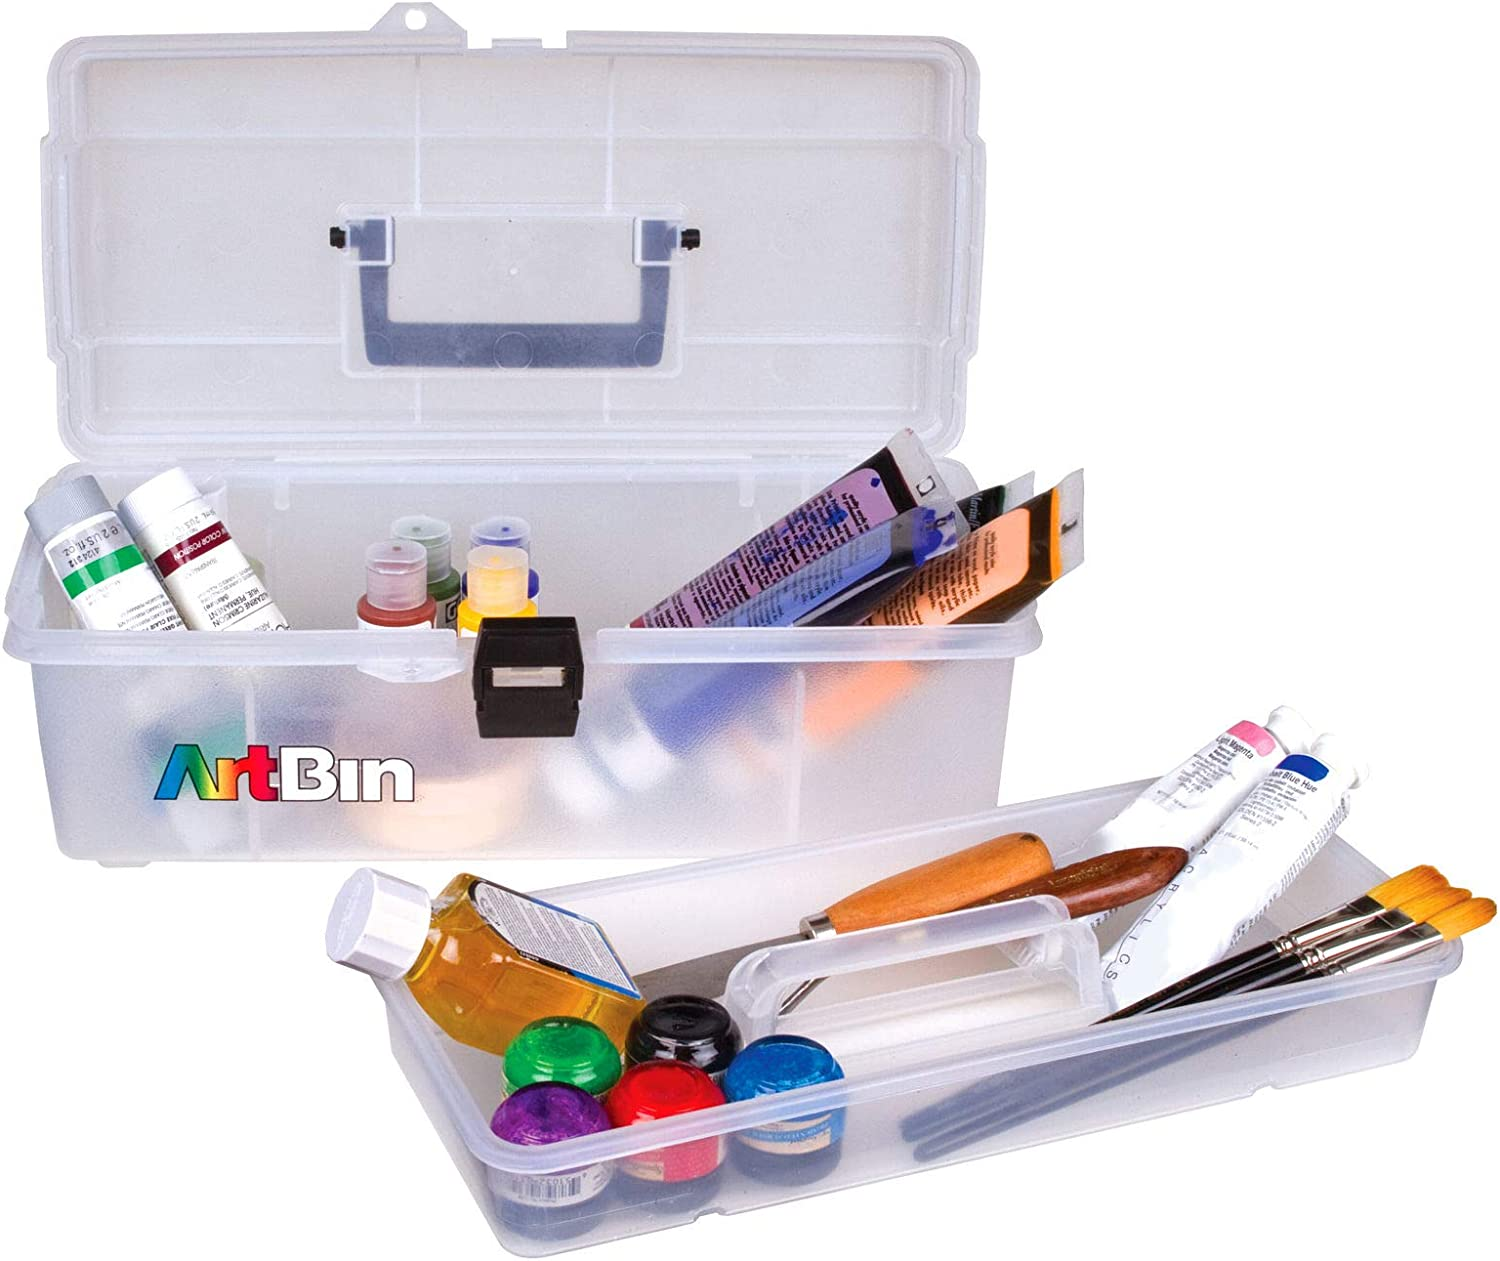 ArtBin 6965AB 14 in. Lift-Out Tray Box, Portable Art & Craft Organizer with Handle and Tray, [1] Plastic Storage Case, Clear